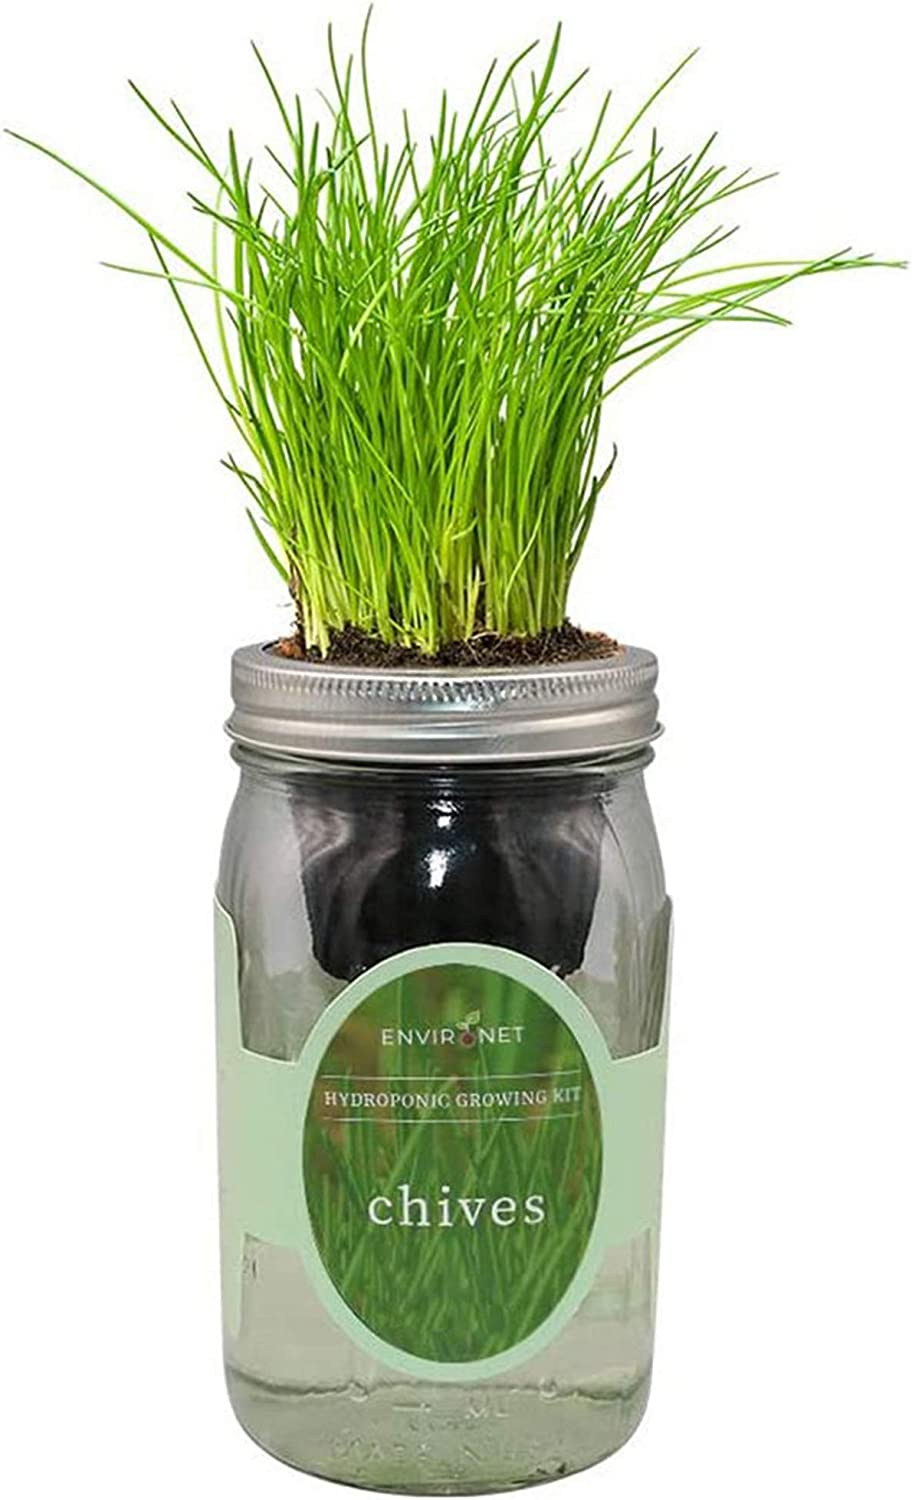 Environet Hydroponic Herb Growing Kit, Self-Watering Mason Jar Herb Garden Starter Kit Indoor, Grow Your Own Herbs from Seeds (Chives)